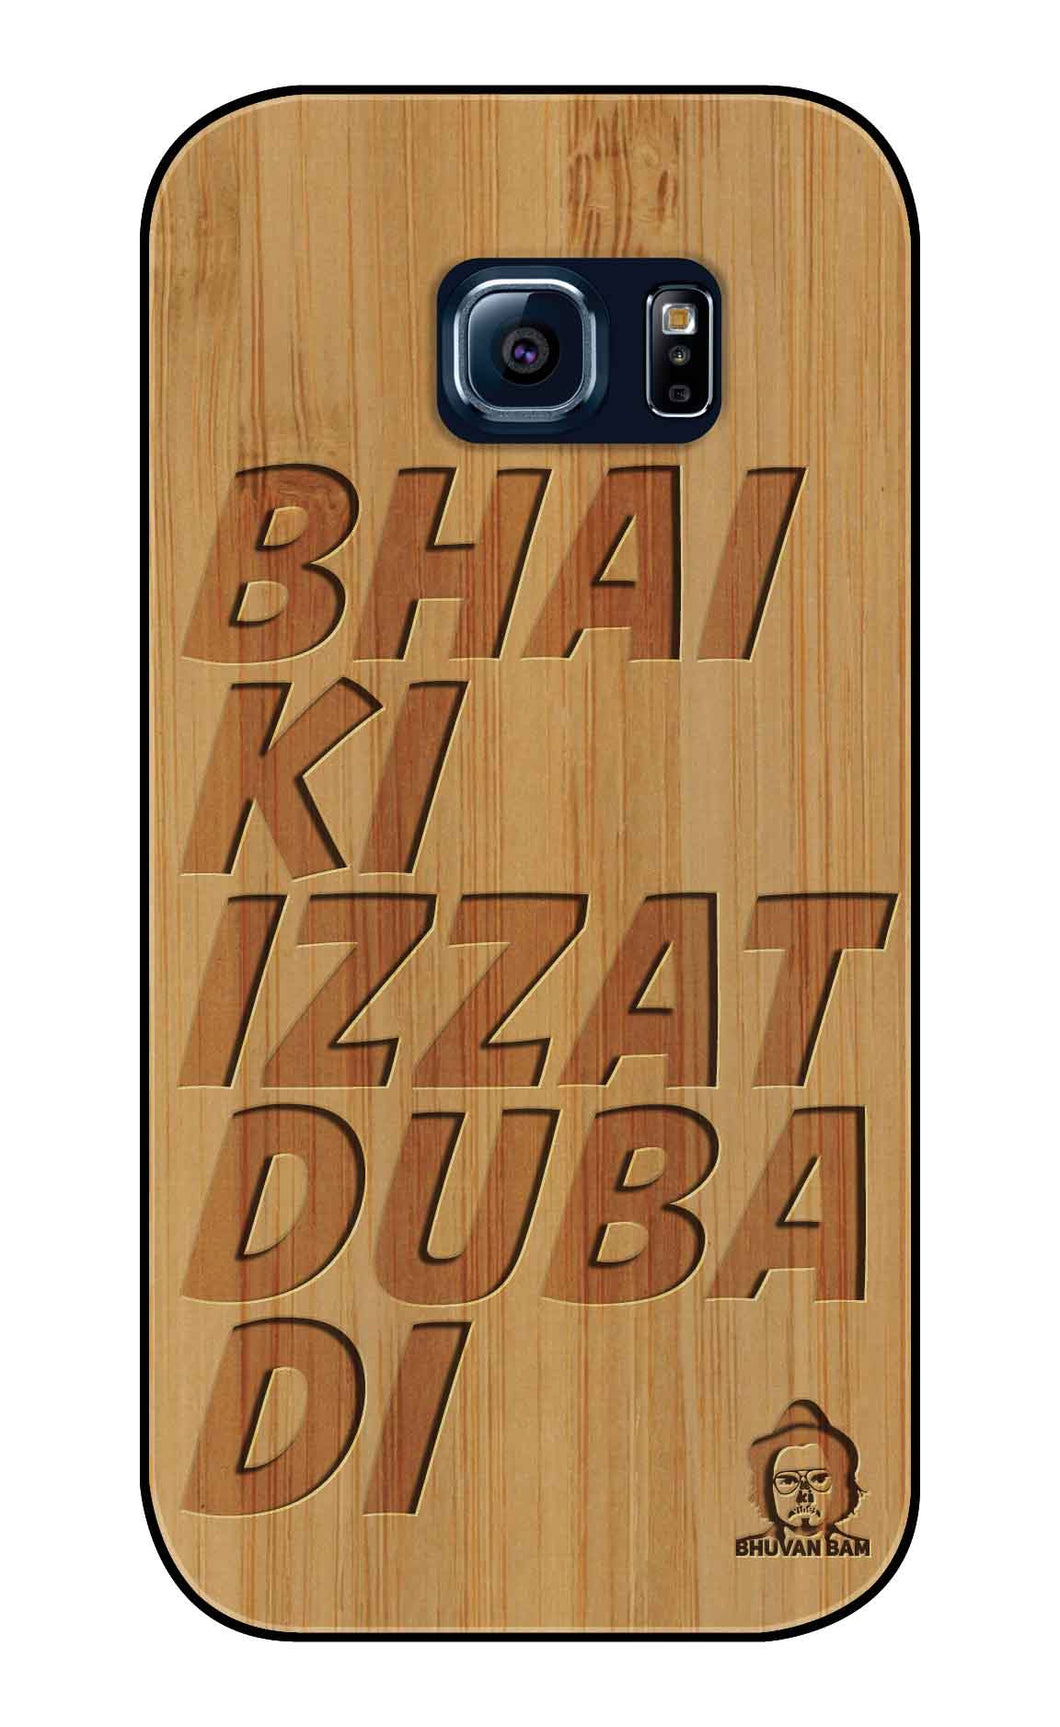 Bamboo Wood Izzat Edition For samsung galaxy S6 Edge